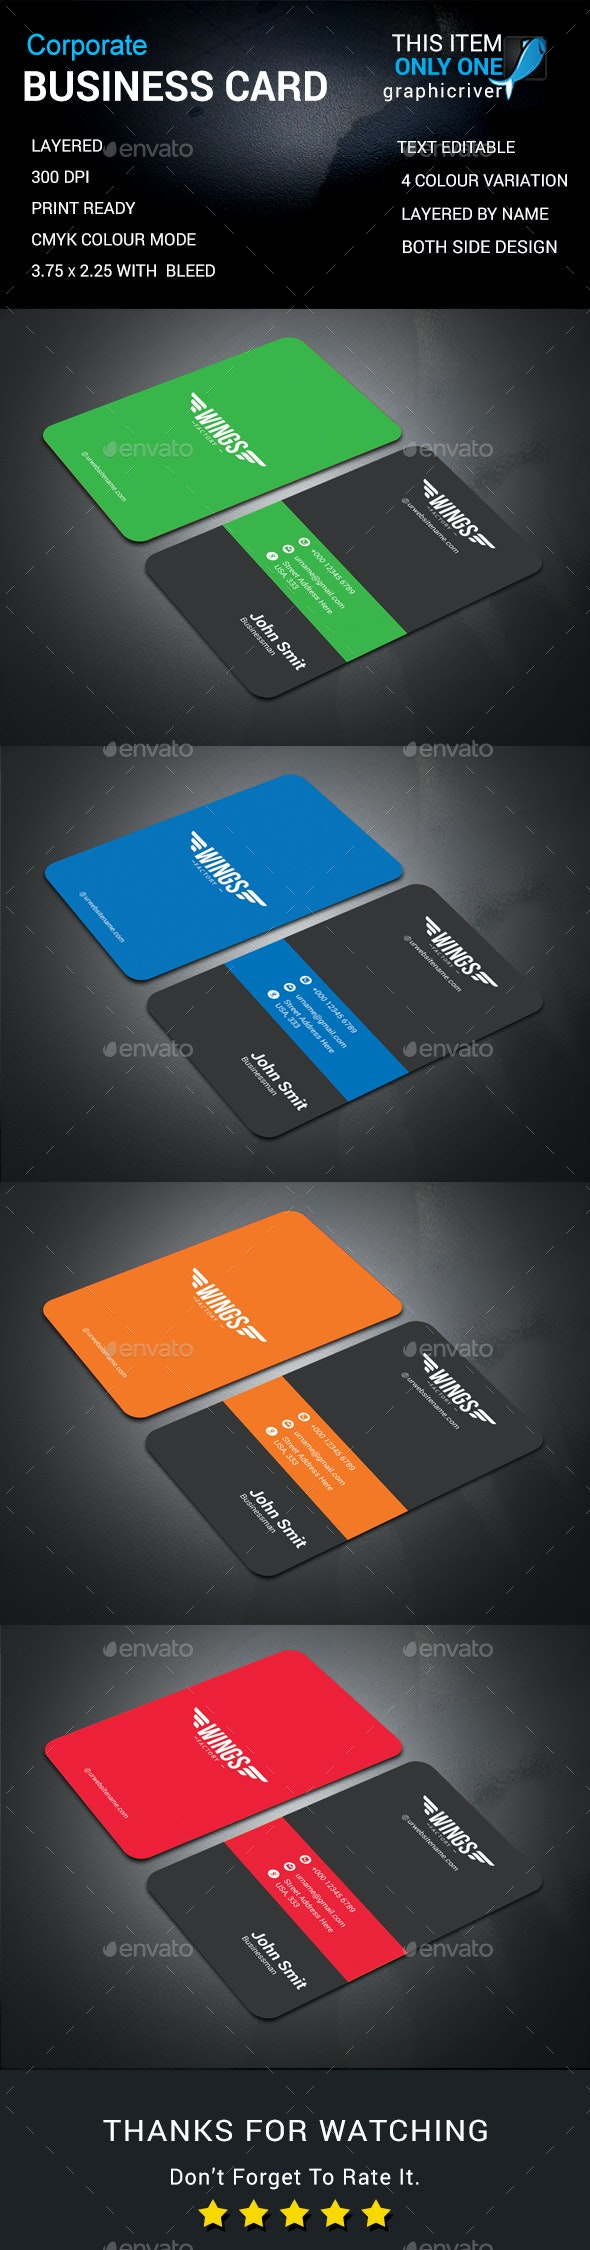 Corporate Business Cards - Business Cards Print